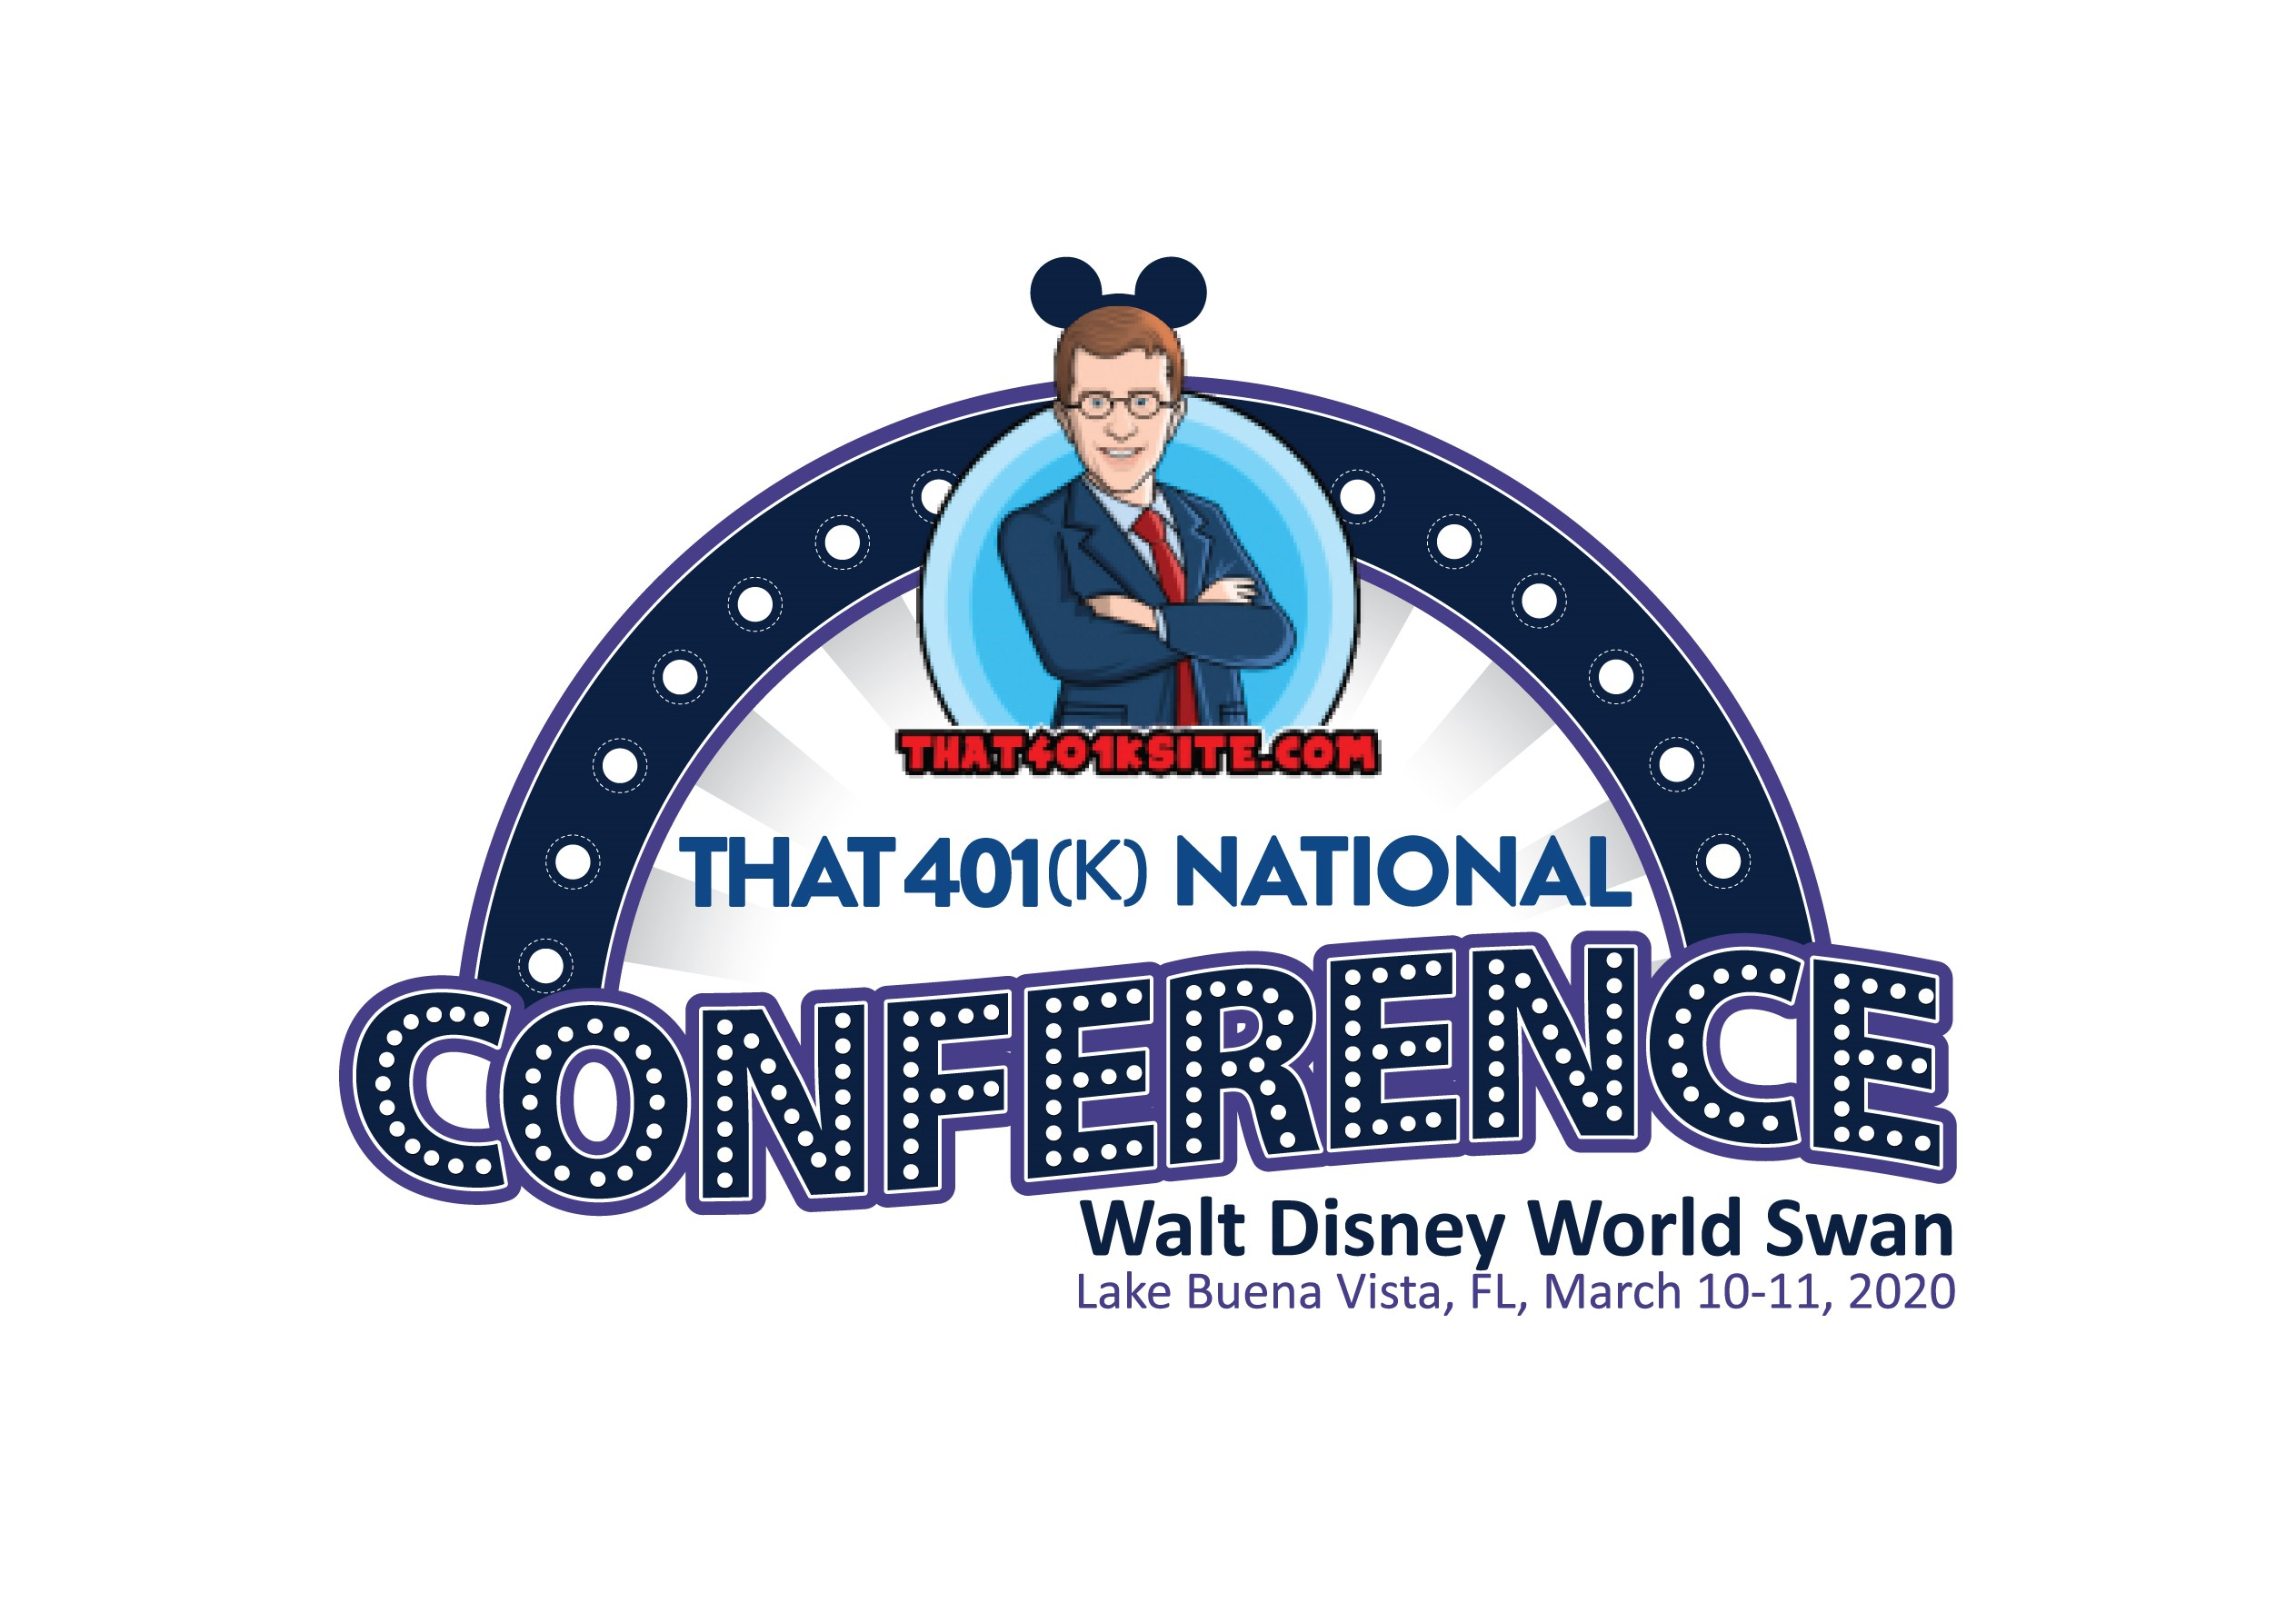 That 401(k) National Conference, Where Fun Meets 401(k) | That 401k Site